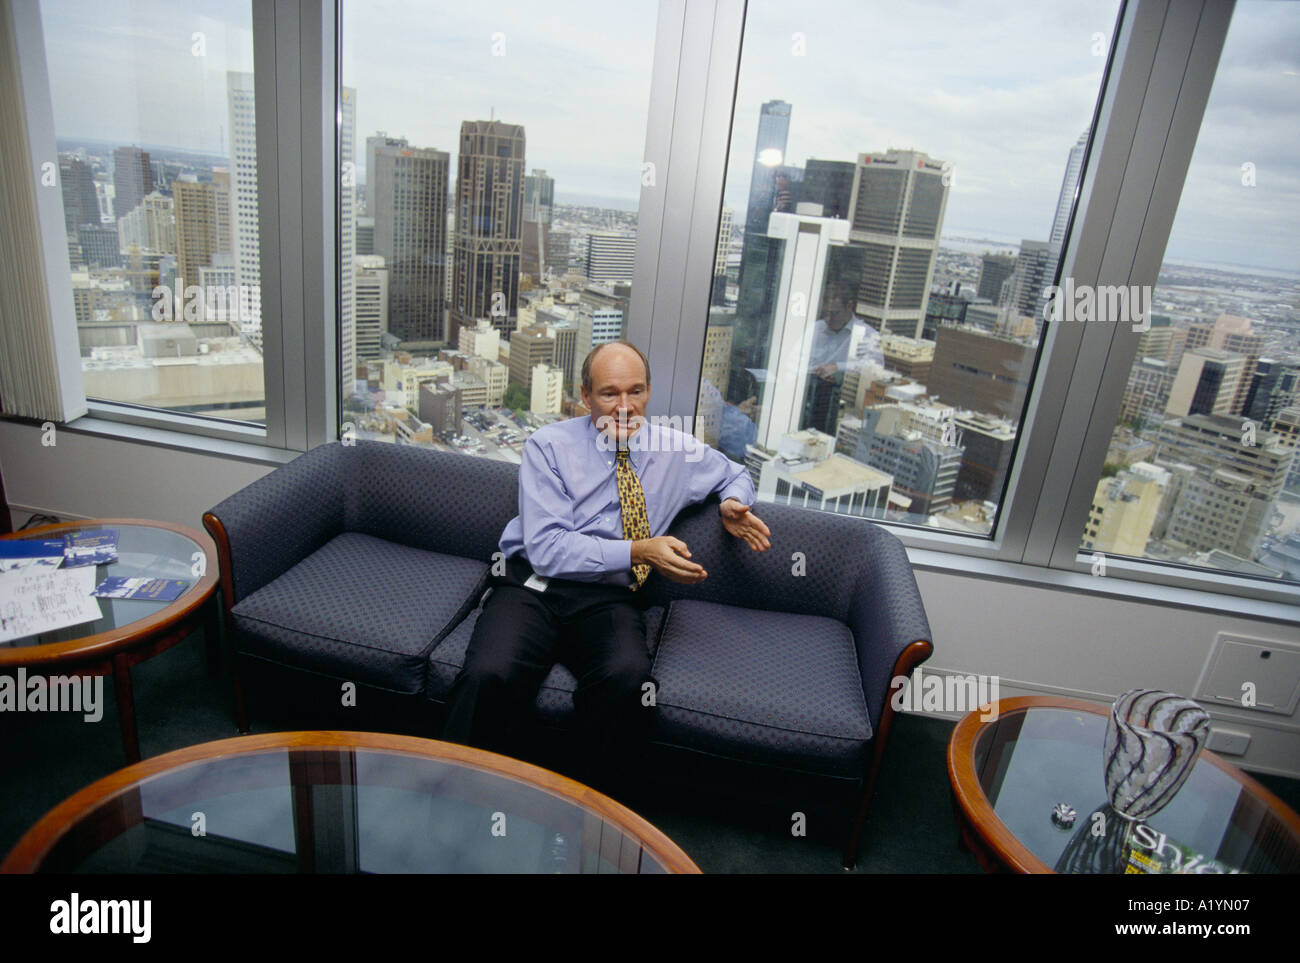 GREG BOURNE CEO BP MELBOURNE INTERVIEWED AT HIS OFFICE 2000 - Stock Image